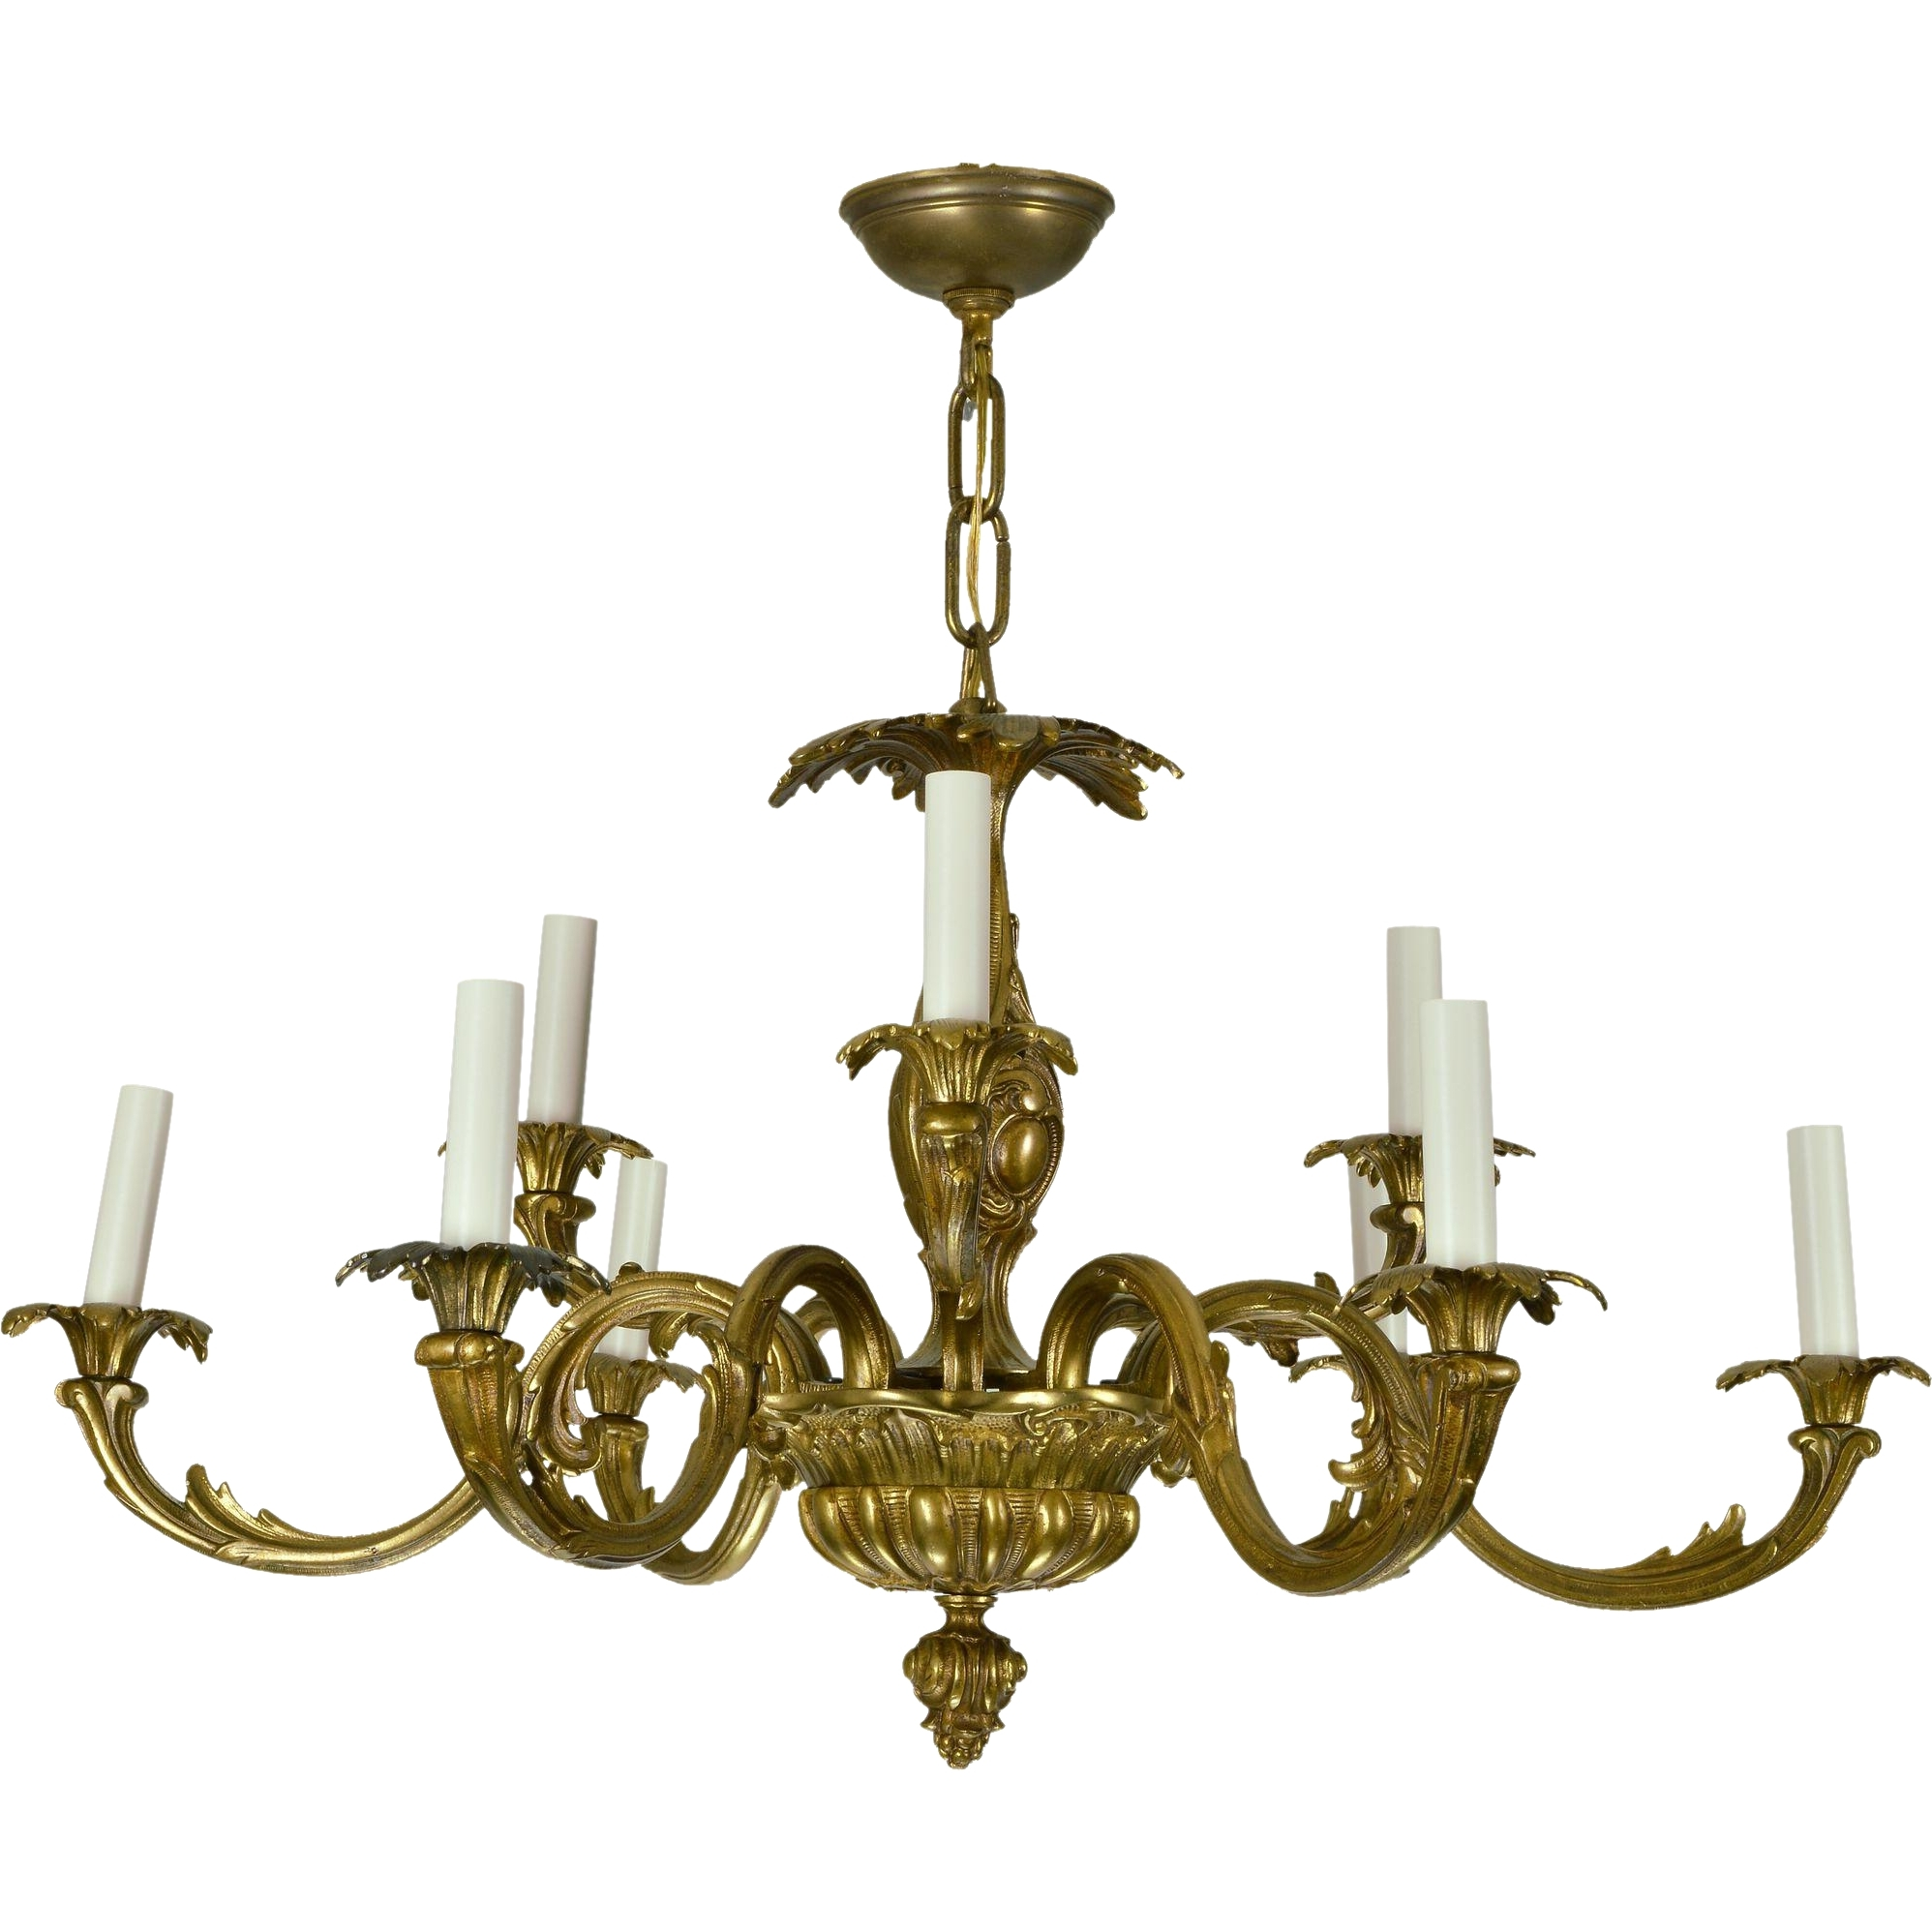 Vintage Brass Chandeliers Intended For 2019 Home Design : Graceful Antique Brass Chandeliers Vintage Chandelier (View 16 of 20)